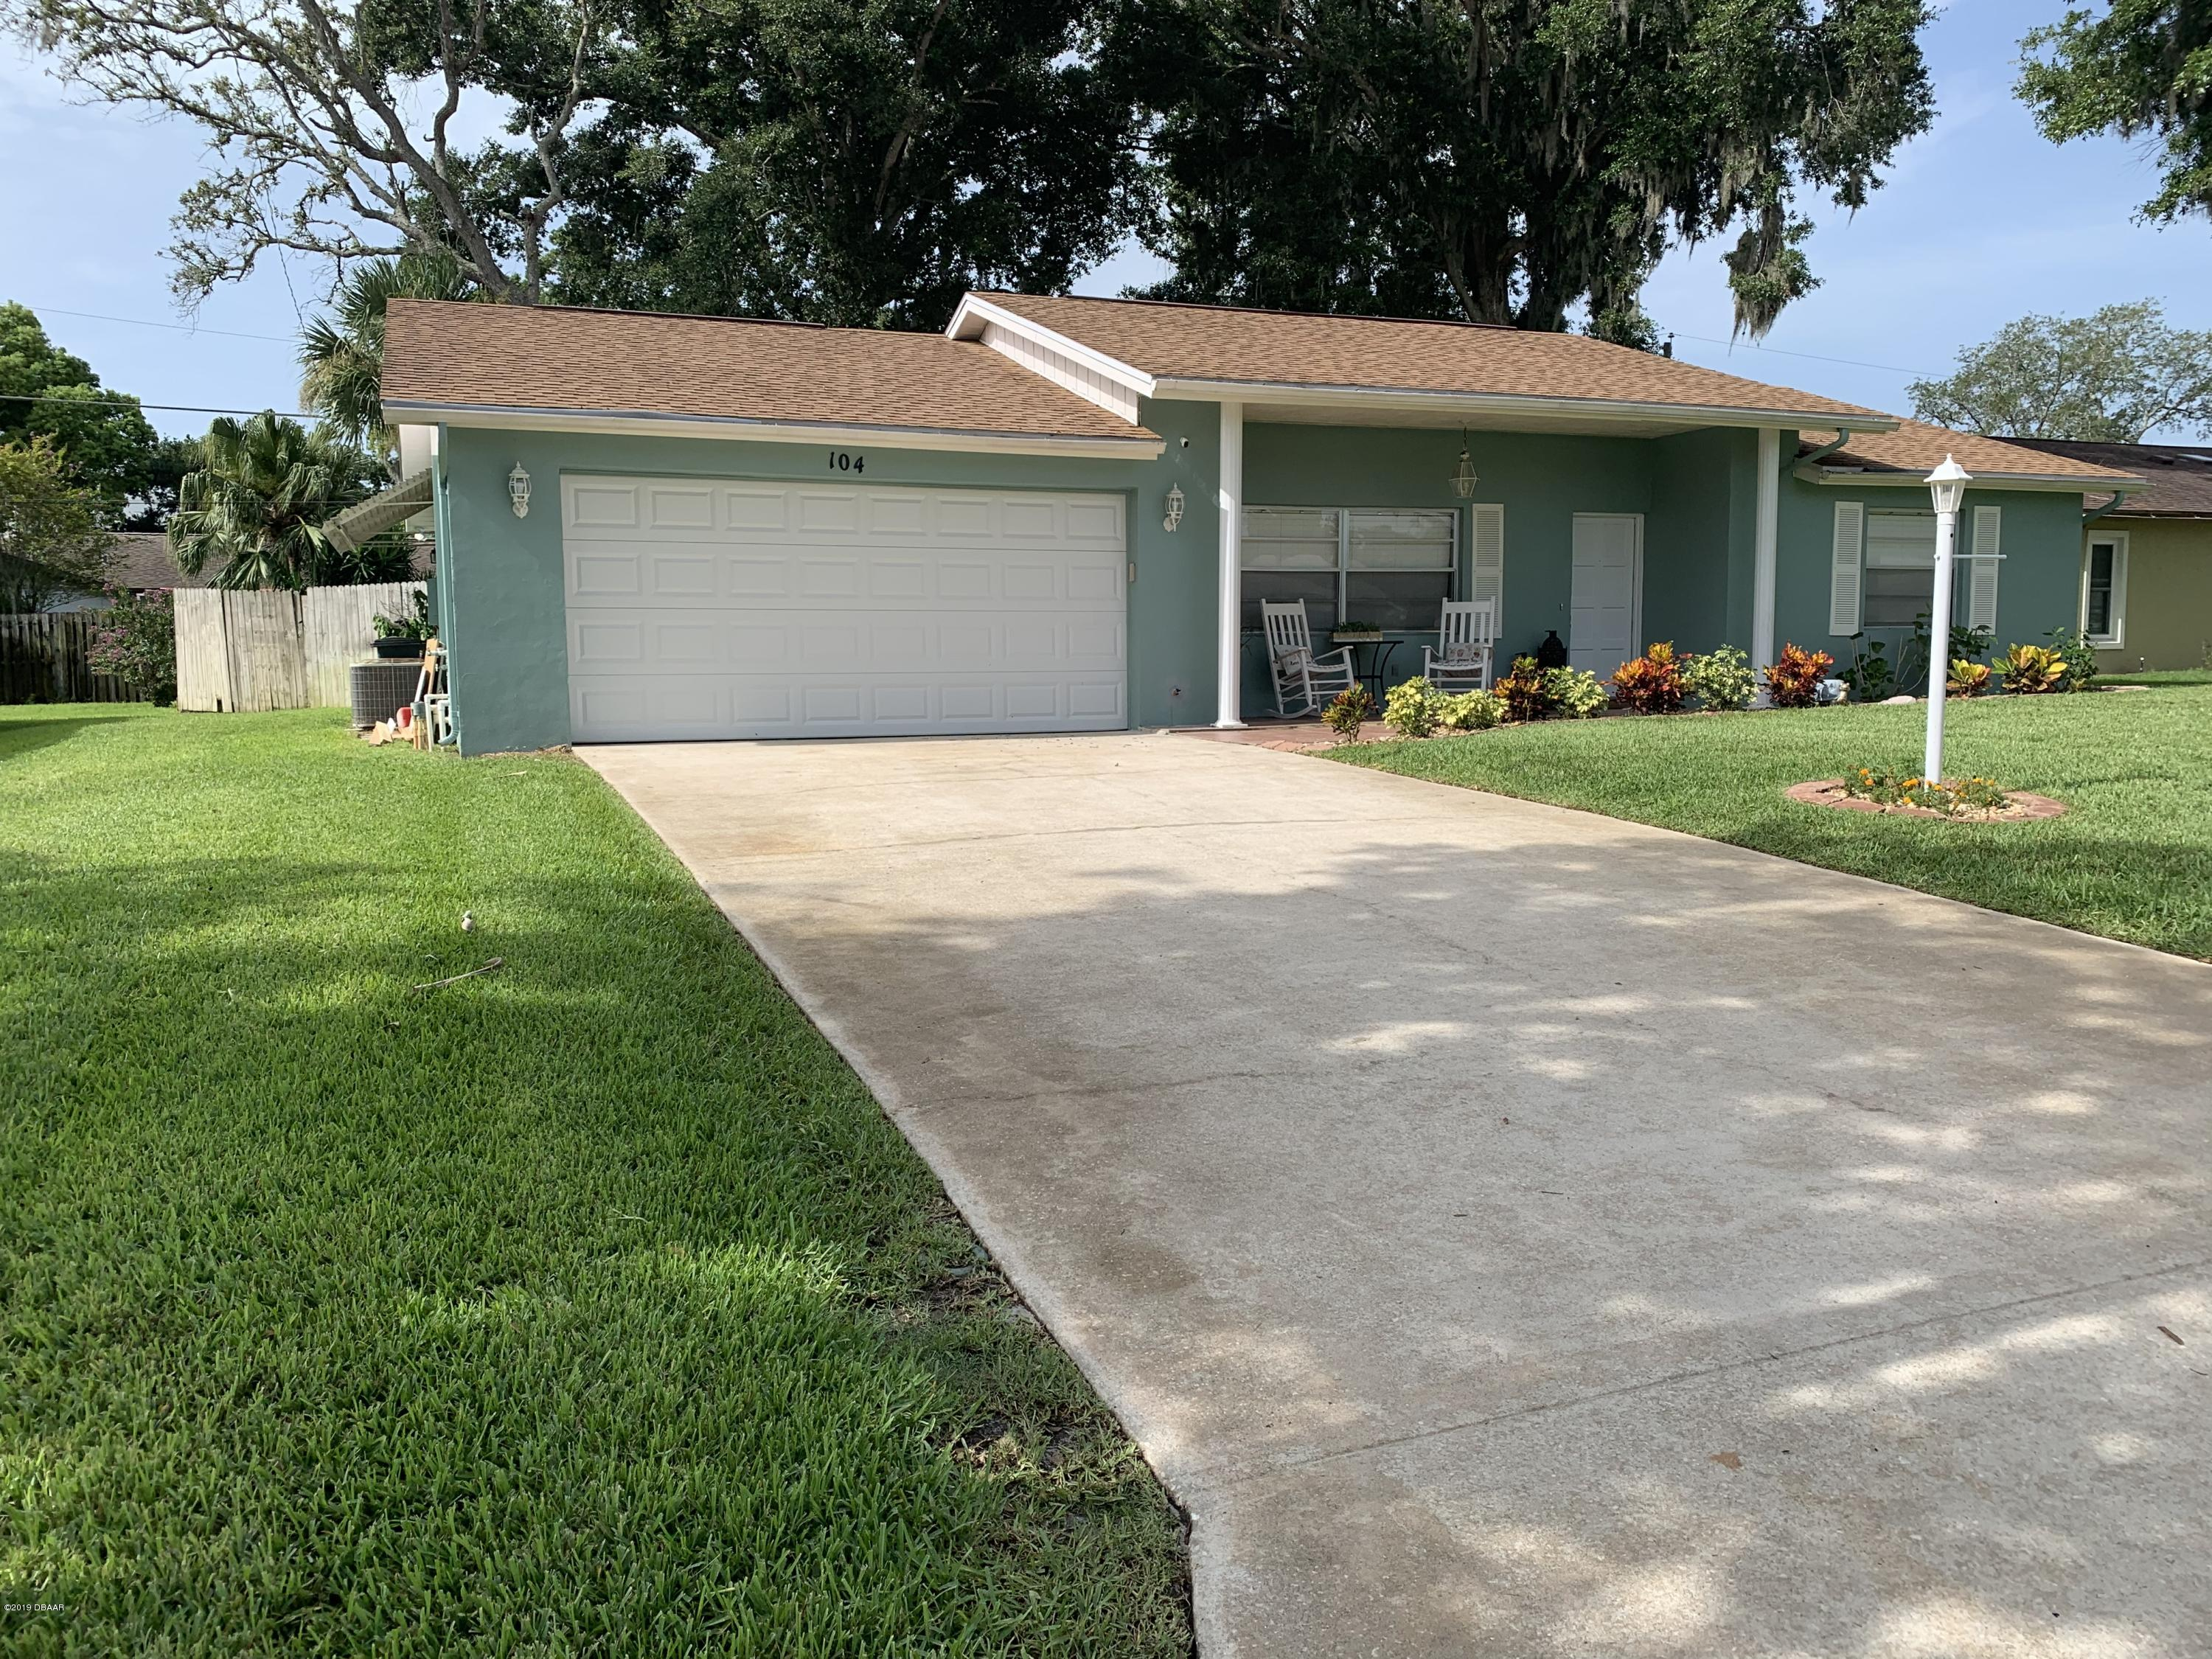 104 Colina Place, Ormond Beach in Volusia County, FL 32174 Home for Sale